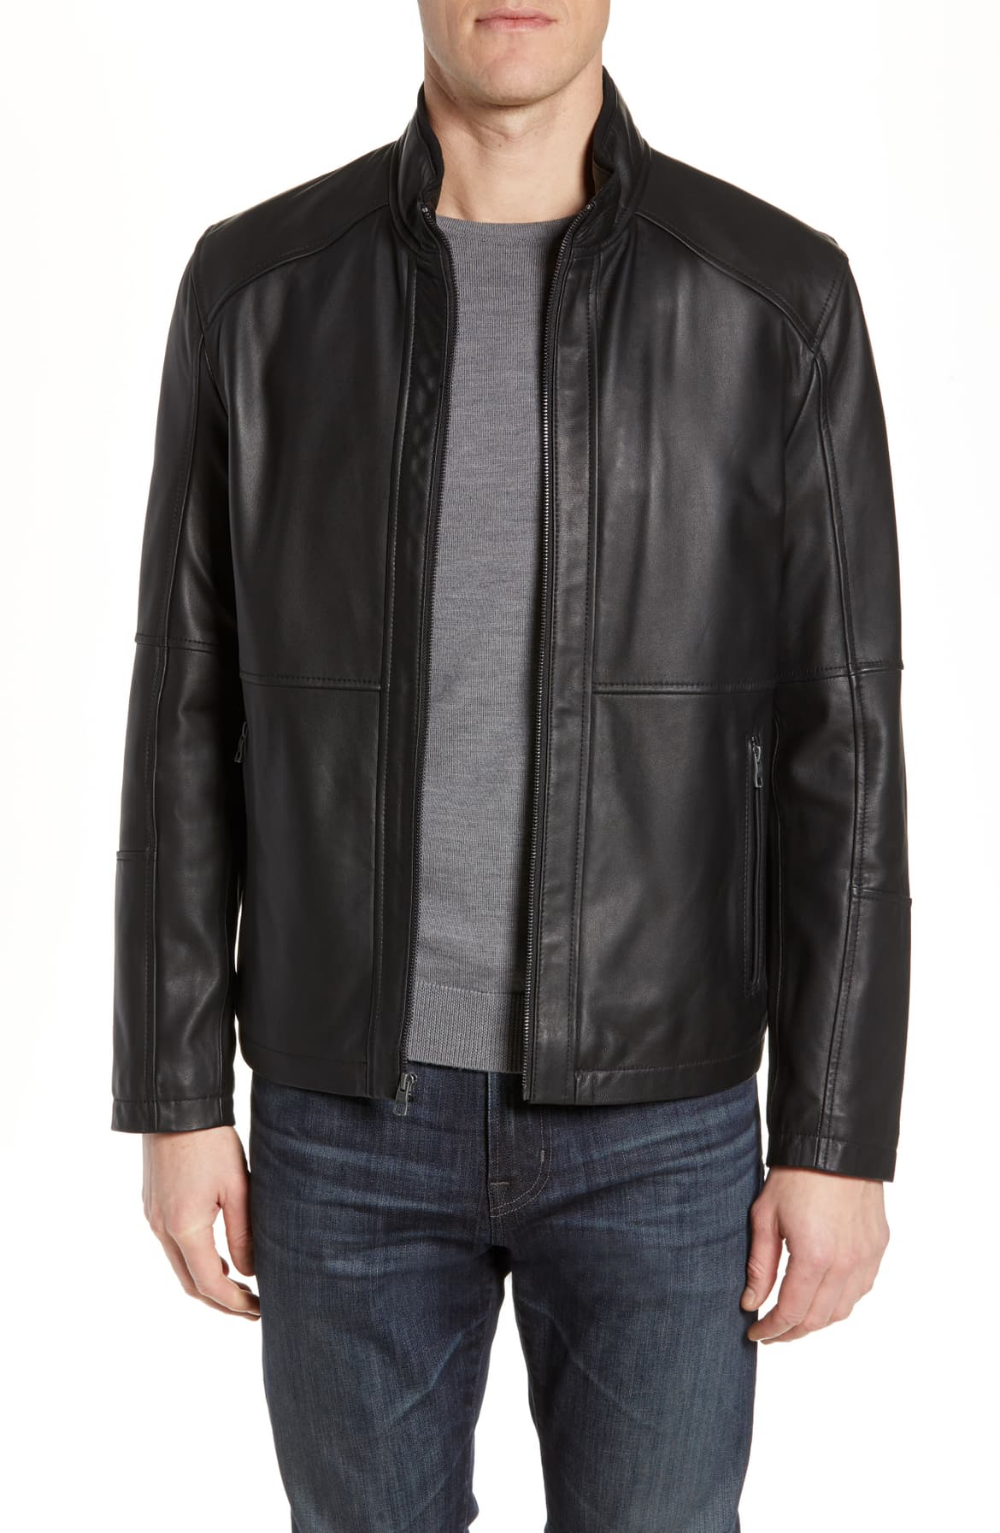 Andrew Marc Wiley Lambskin Leather Jacket Leather jacket